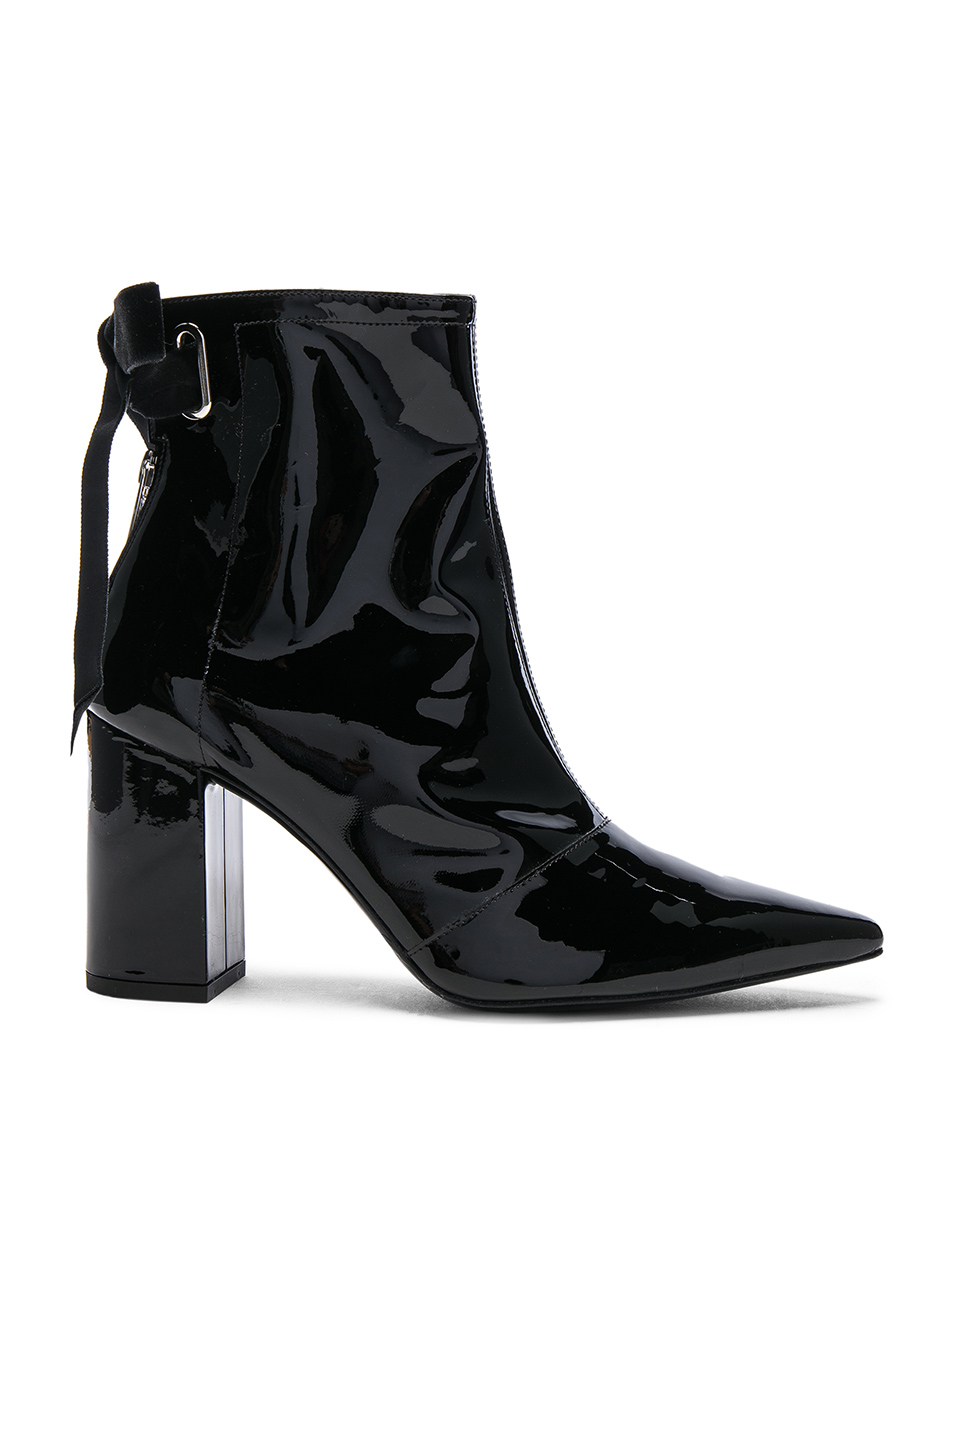 X Clergerie Karli Patent Leather Ankle Boots, Black